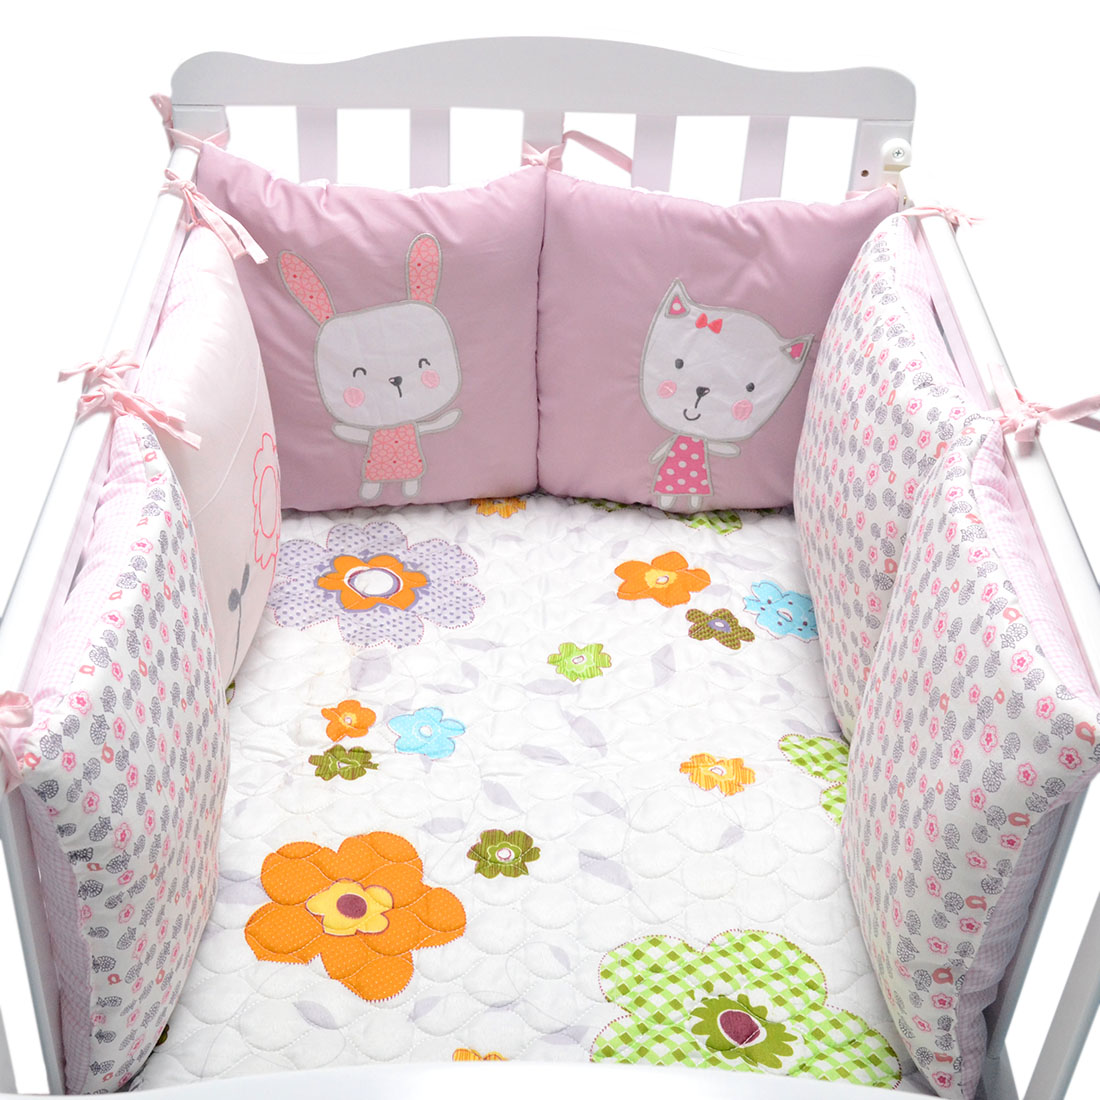 6pcs Baby Bed Bumpers for Newborn Cotton Bed Baby Crib Bumper Bedding Around Protection Back Cushion Pillow Crib Bumpers Bedding 6pcs lot baby crib bed bumper newborn backrest cushion animal elephant infant toddler bedding around protection